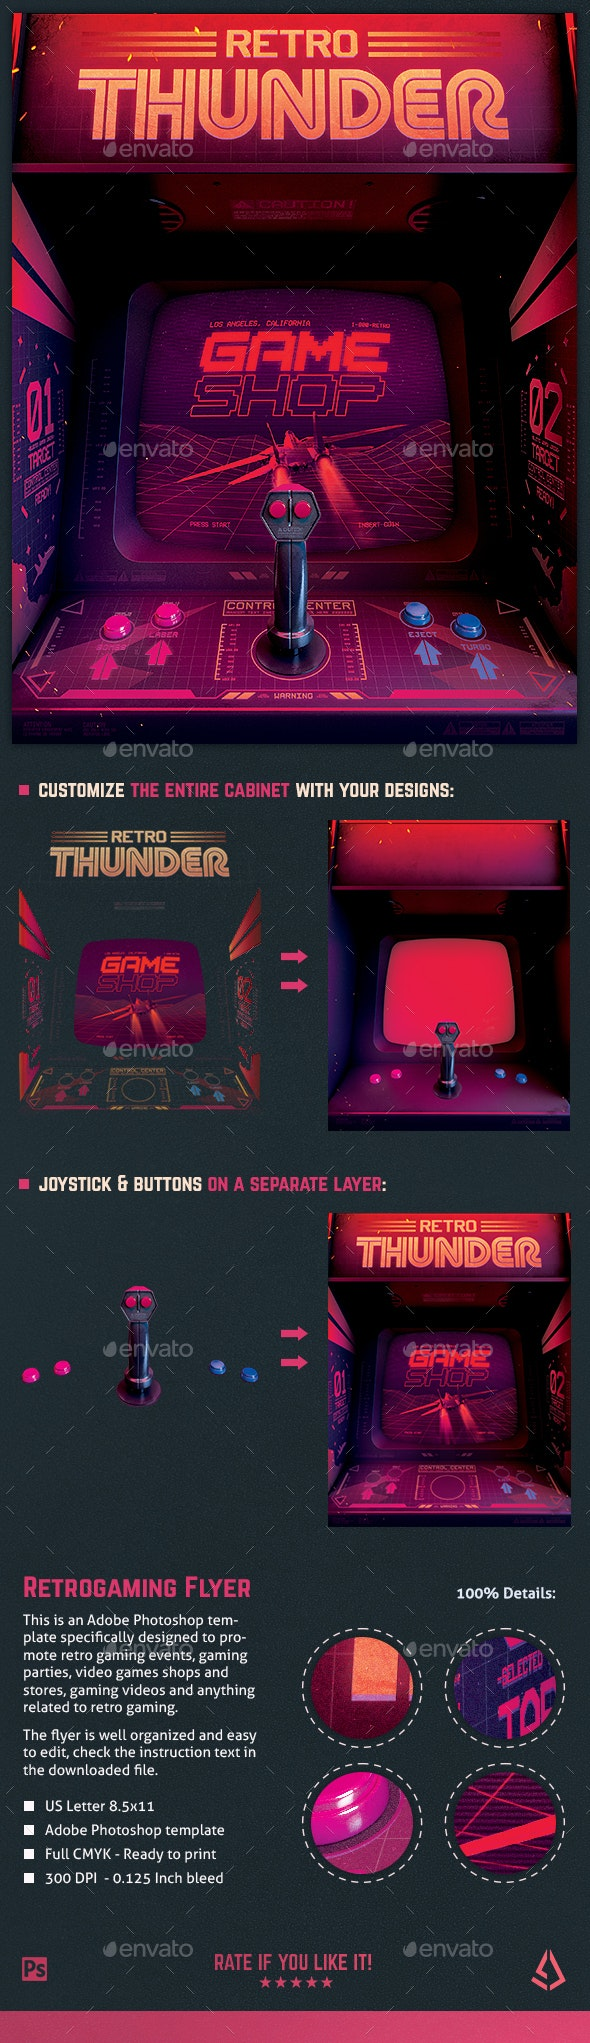 Retro Gaming 80s Synthwave Arcade Flyer - Miscellaneous Events